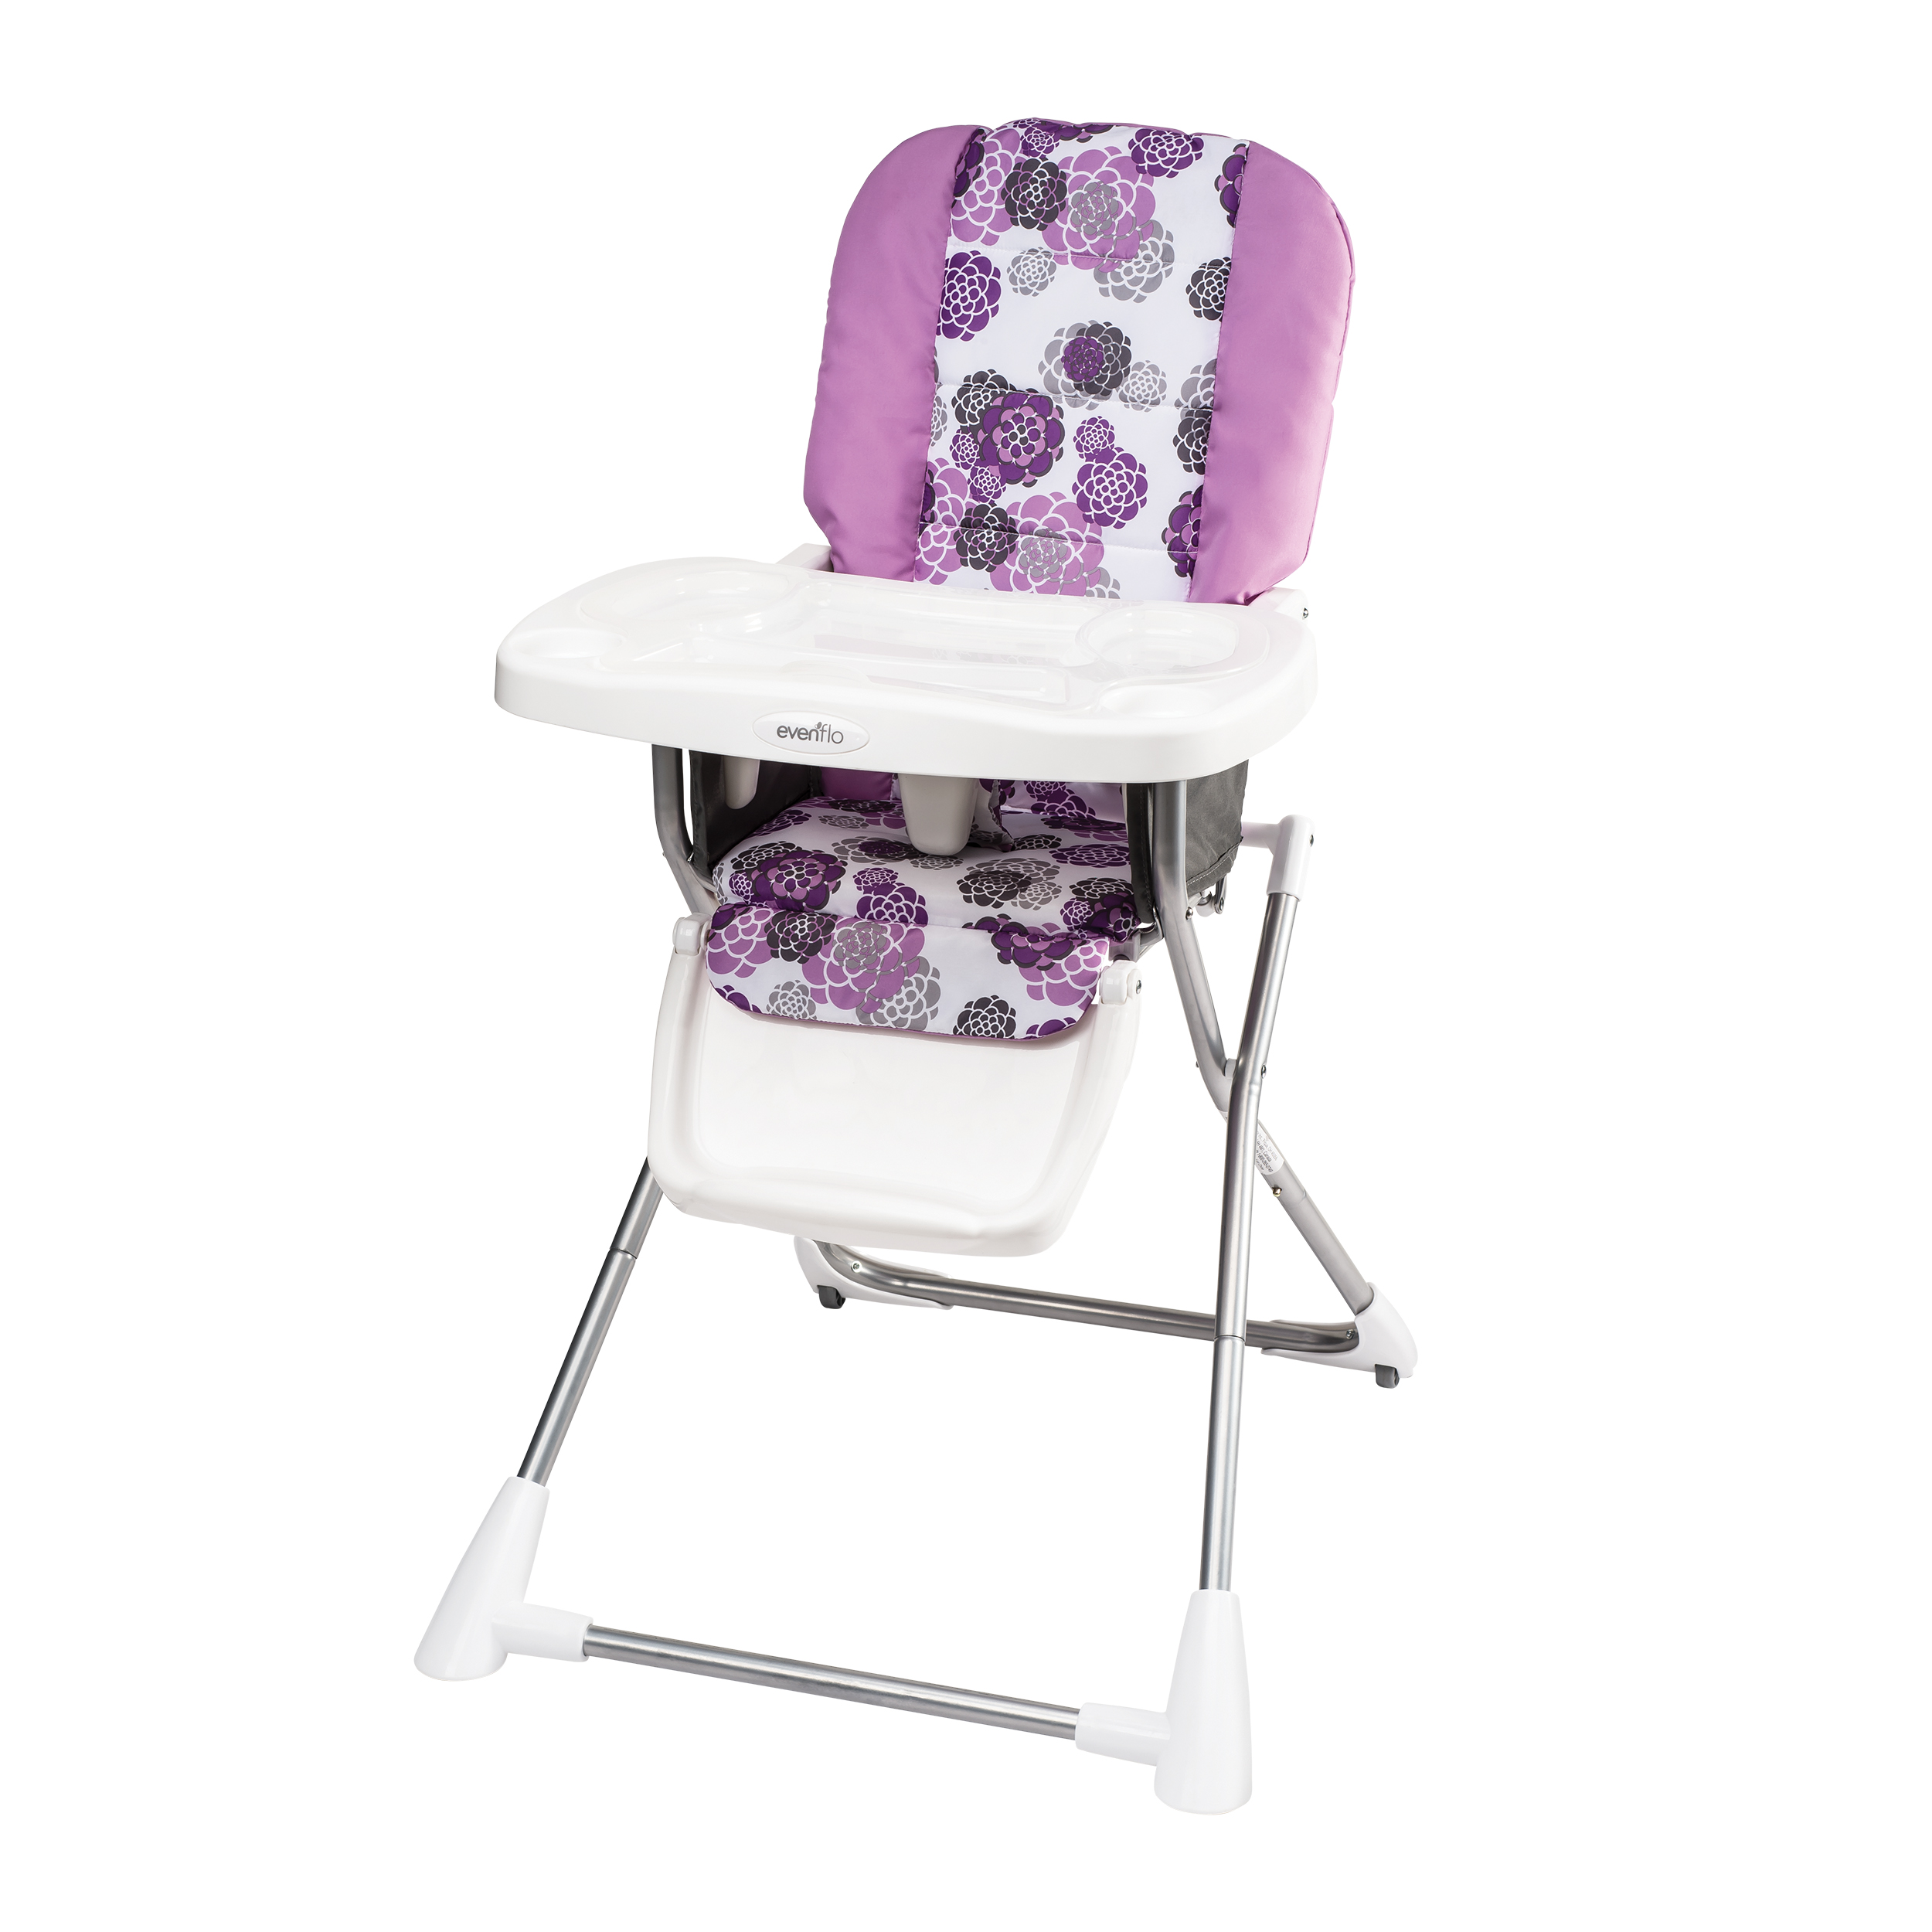 Evenflo Compact Fold High Chair Evenflo Compact Fold High Chair Lizette Baby Baby